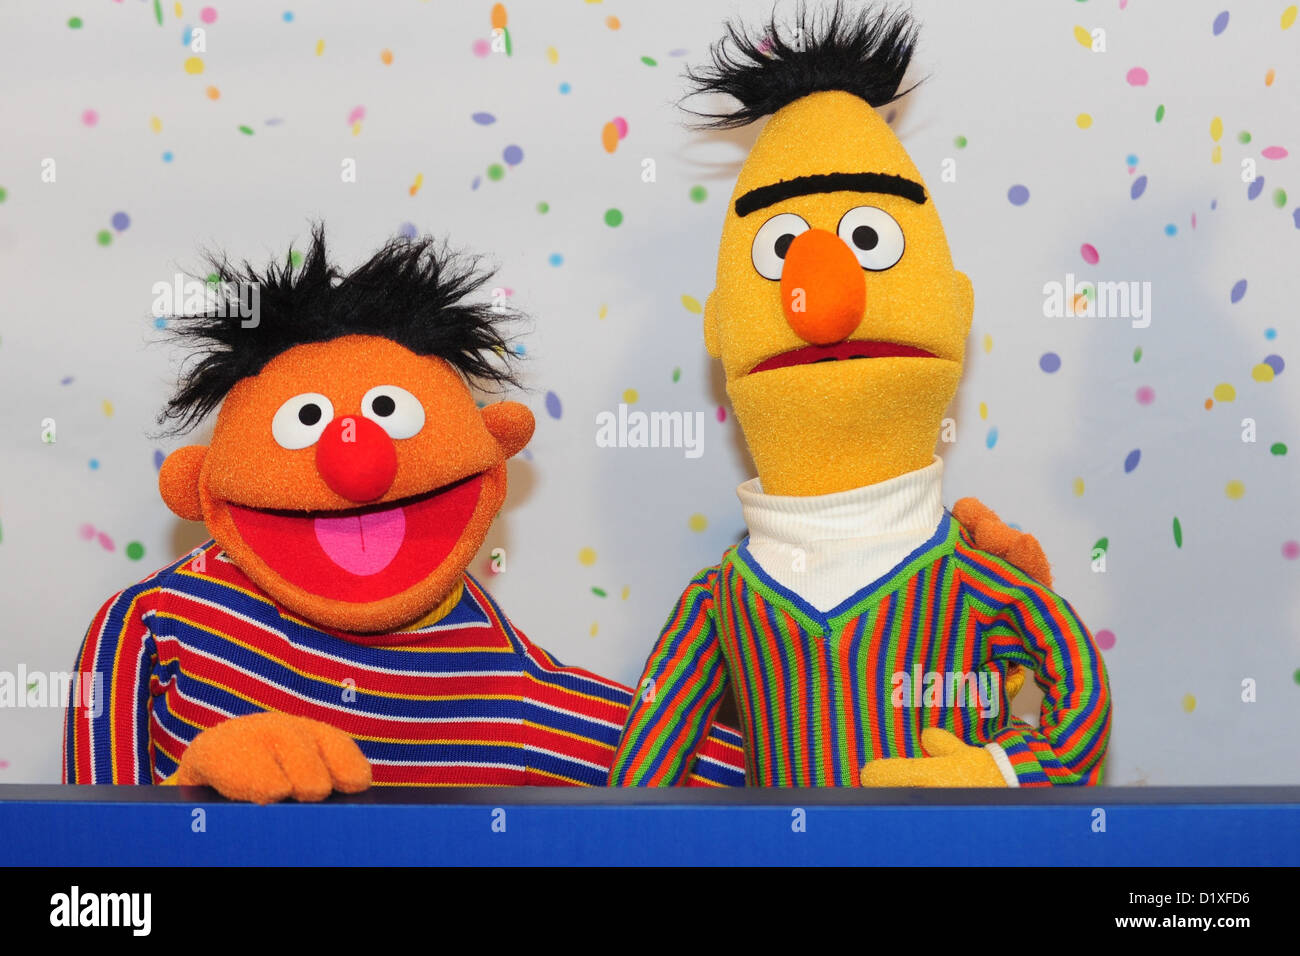 Image result for images of bert and ernie